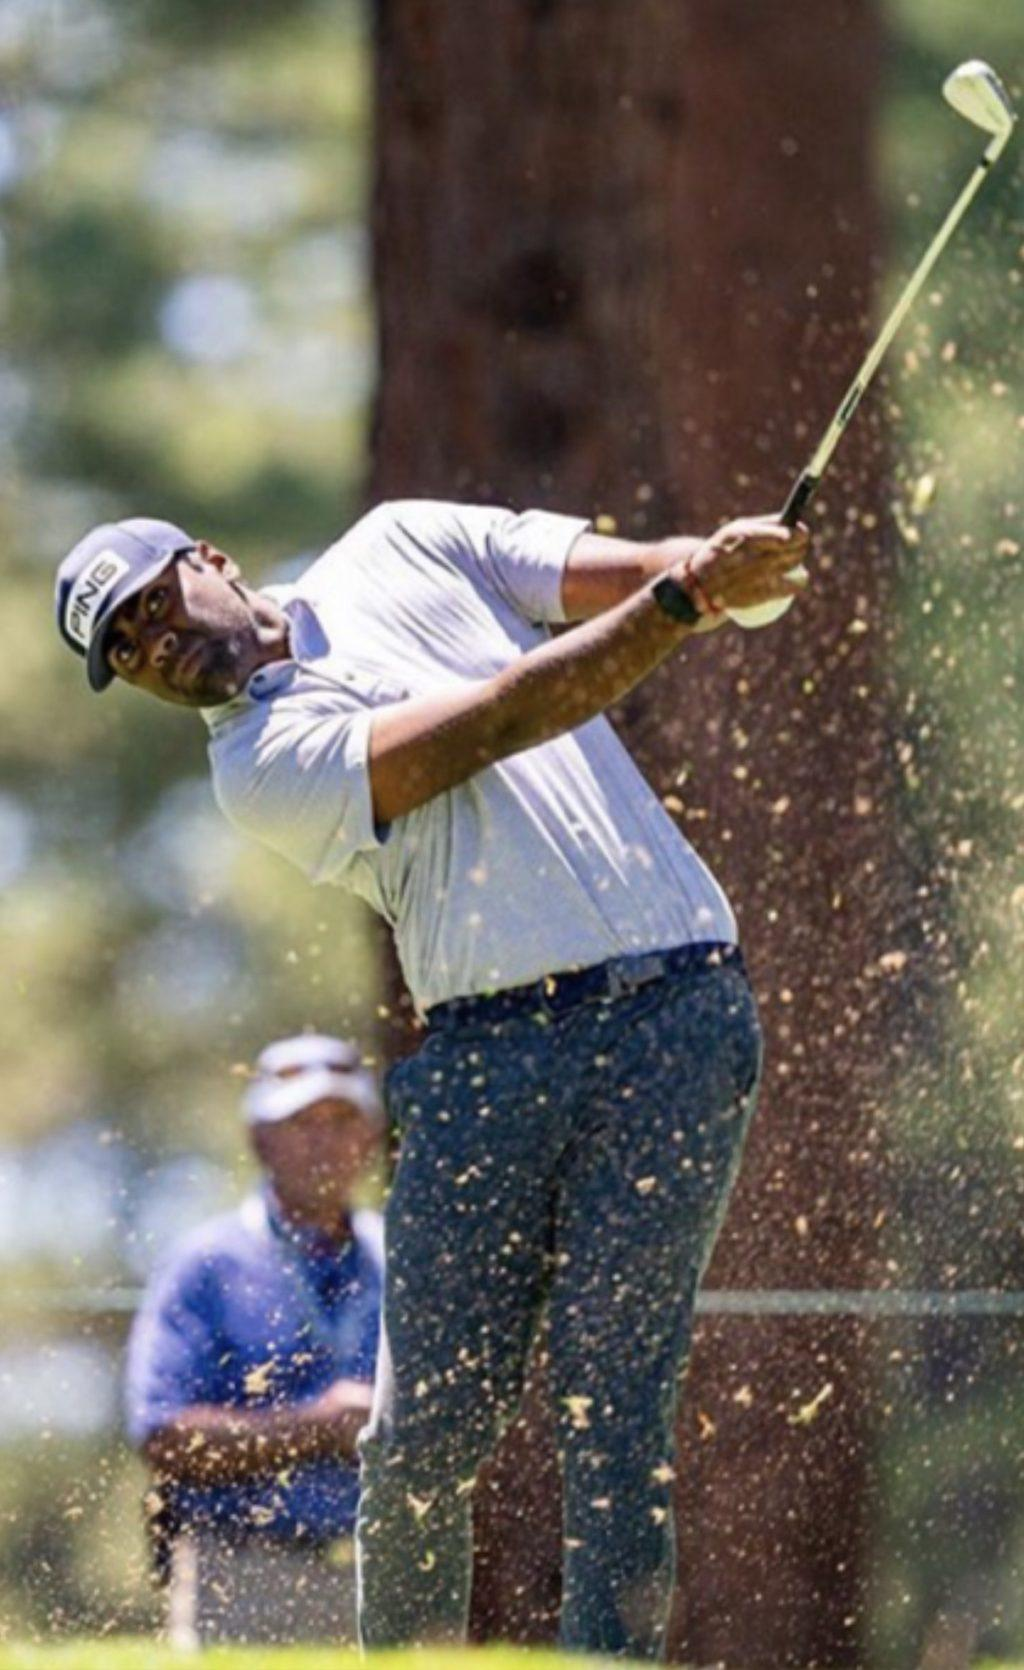 Pro golfer Theegala swings his 9 iron toward the 10th green during the Barracuda Championship on Tahoe Mountain Club's Old Greenwood Course in Truckee, CA. He tied for 41st in the tournament.